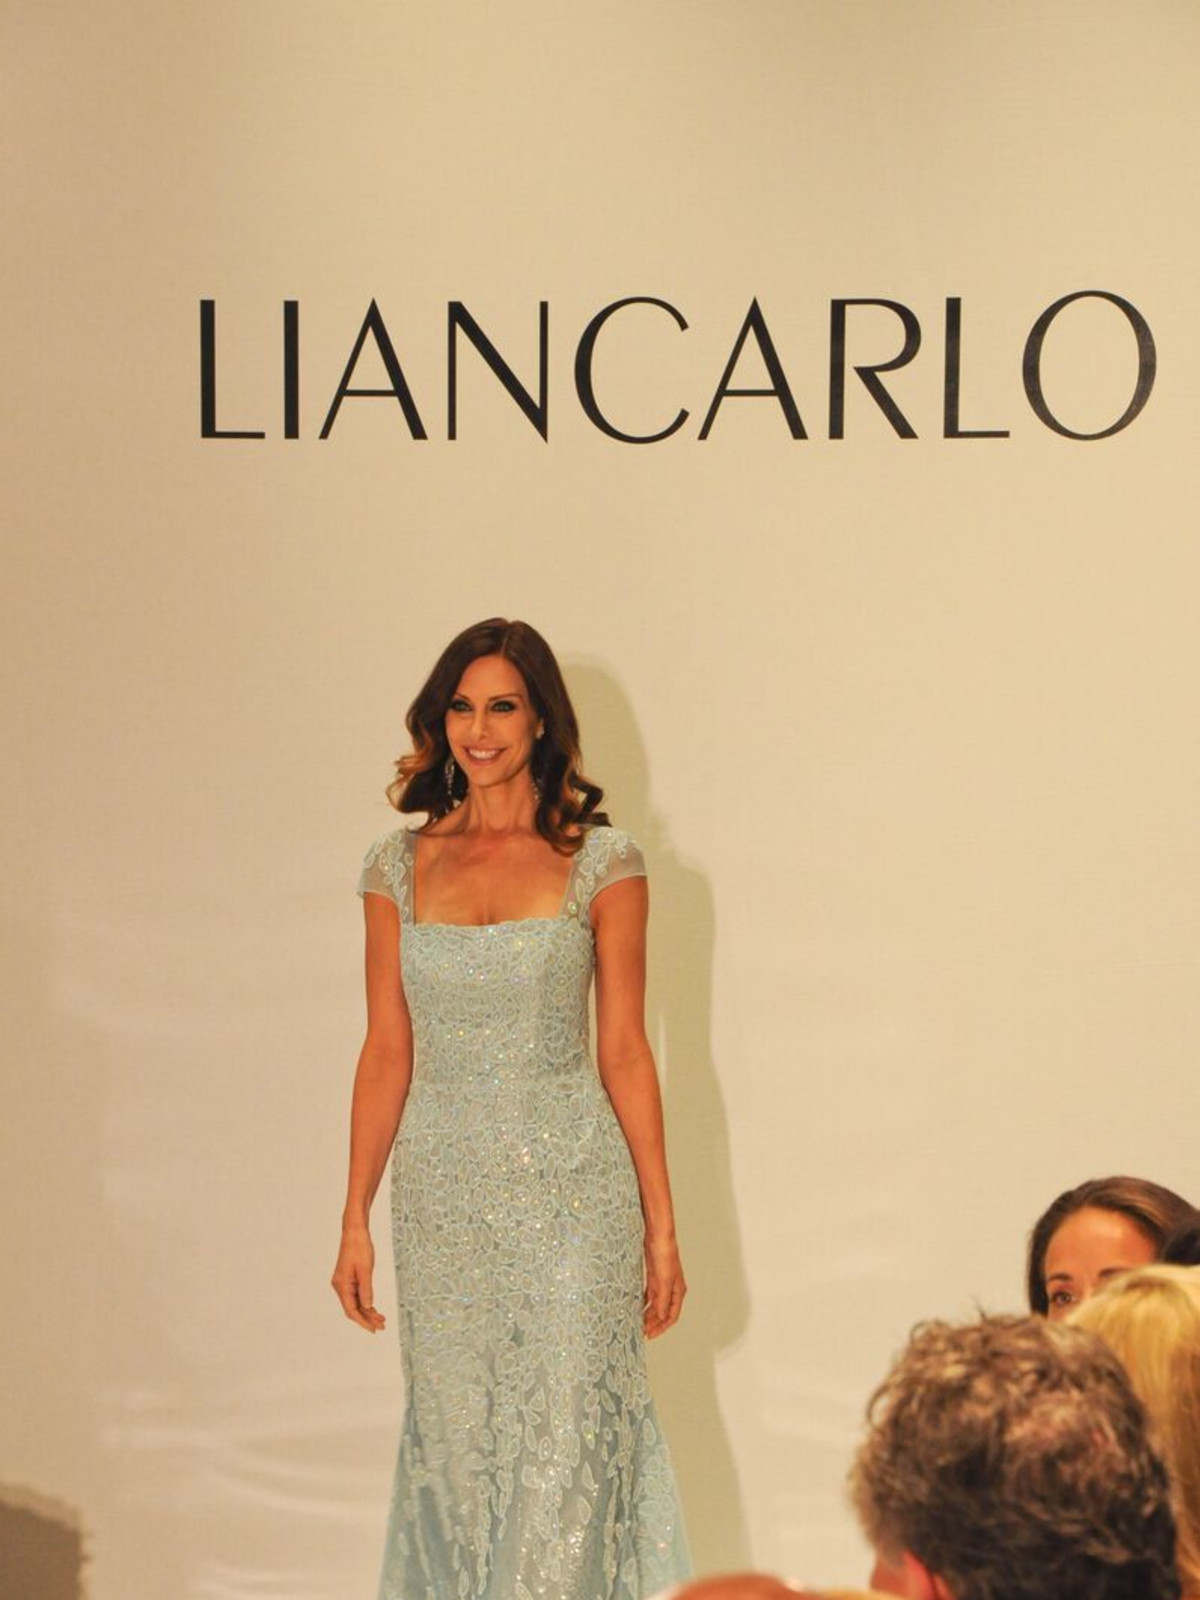 Liancarlo gown